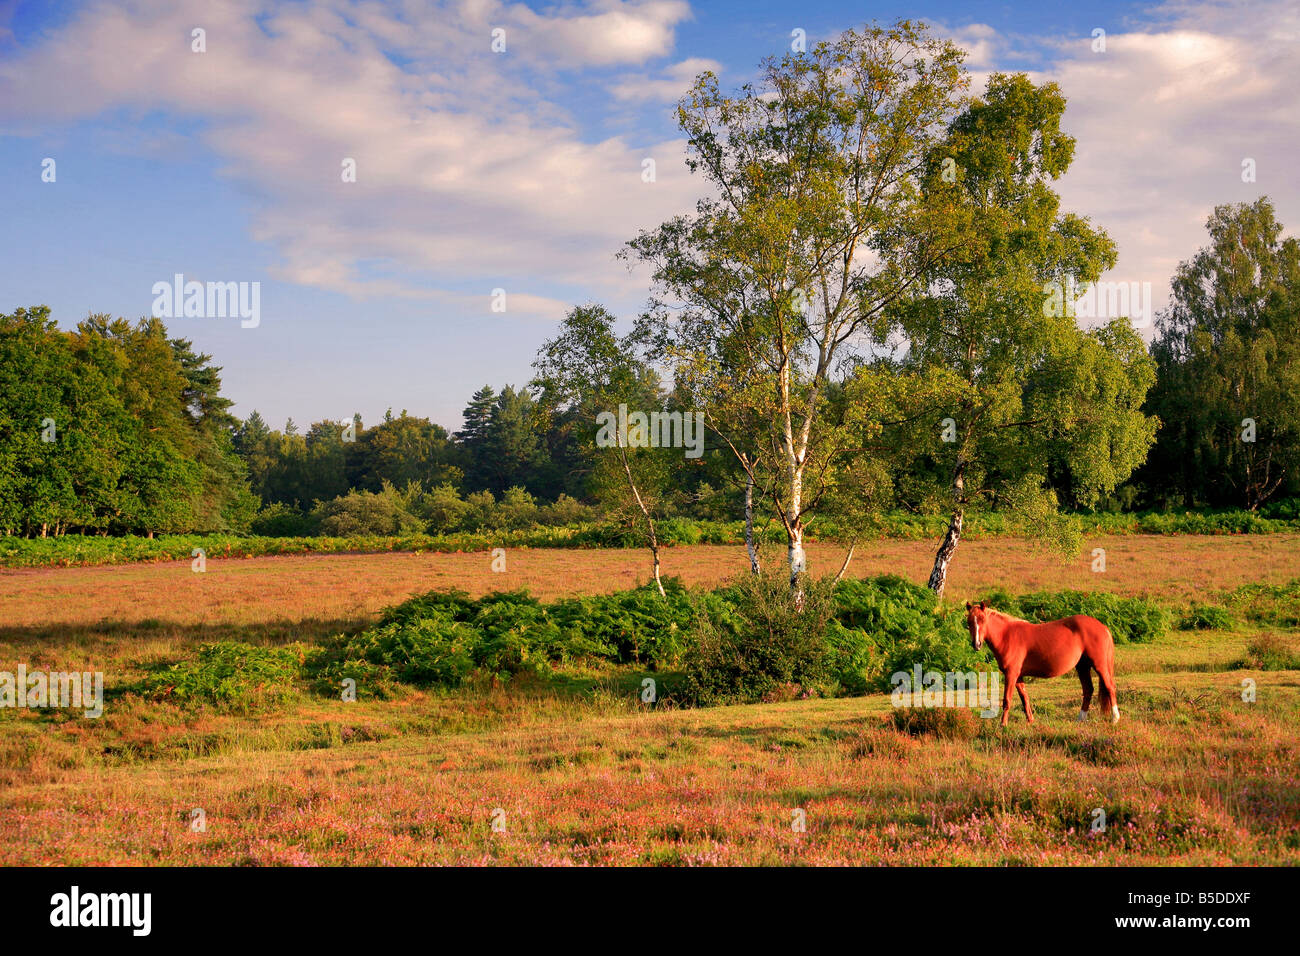 Pony on Emery Down New Forest National Park Hampshire County England Britain UK - Stock Image